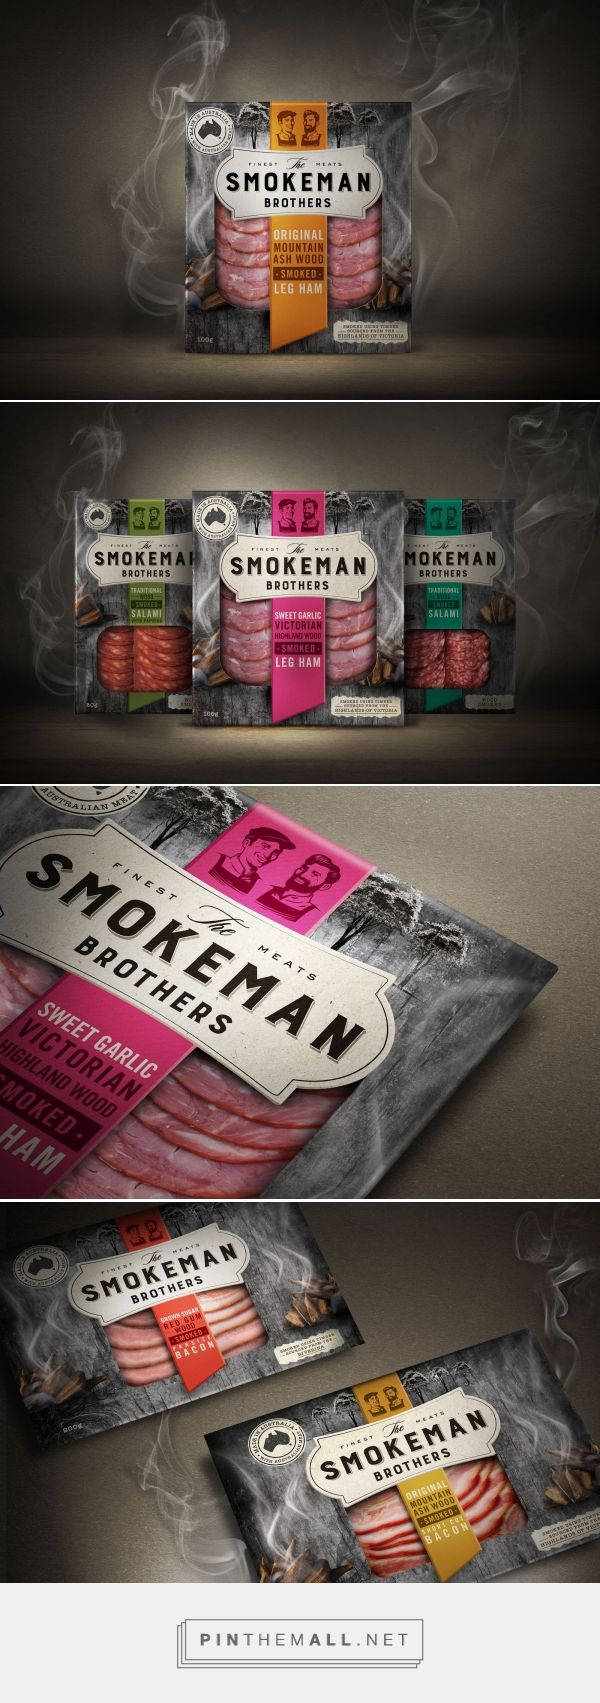 Smokeman Brothers - Packaging of the World - Creative Package Design Gallery - http://www.packagingoftheworld.com/2017/11/smokeman-brothers.html